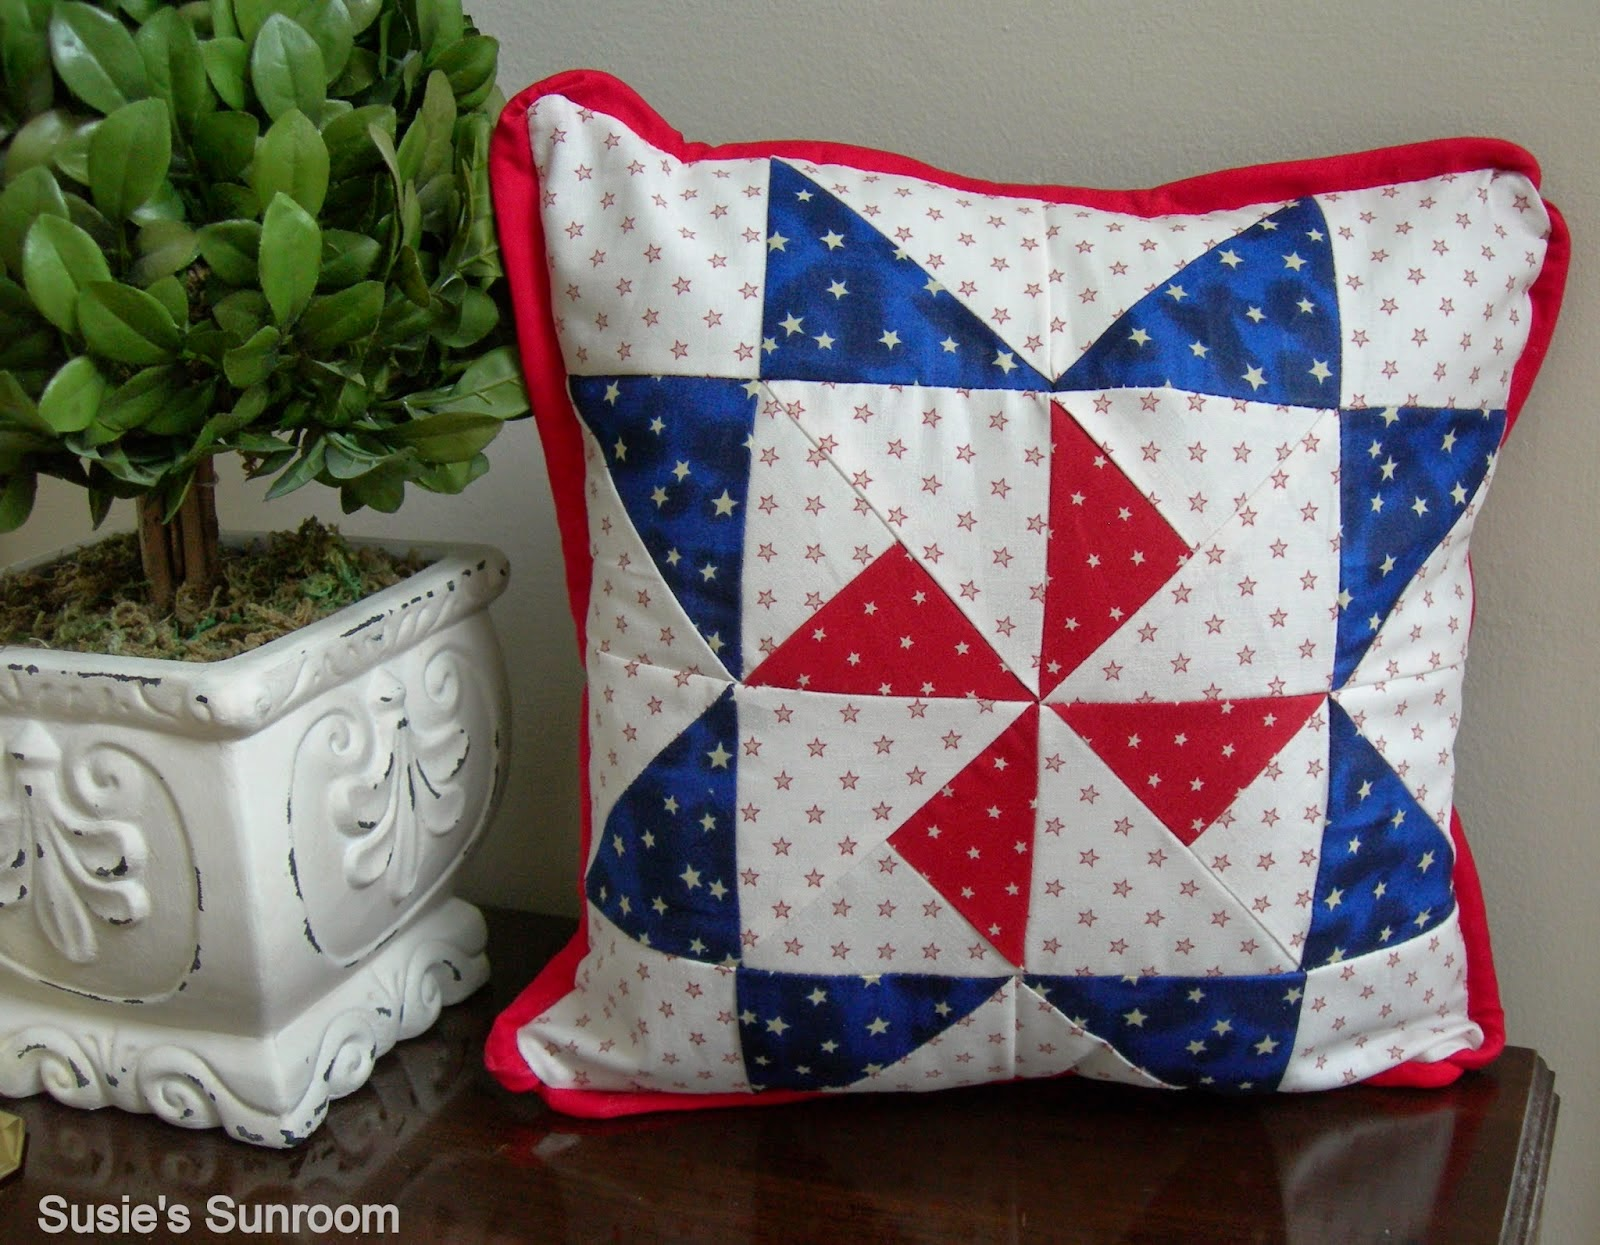 http://susiessunroom.blogspot.co.uk/2014/07/july-s-new-across-pond-sew-along-project.html